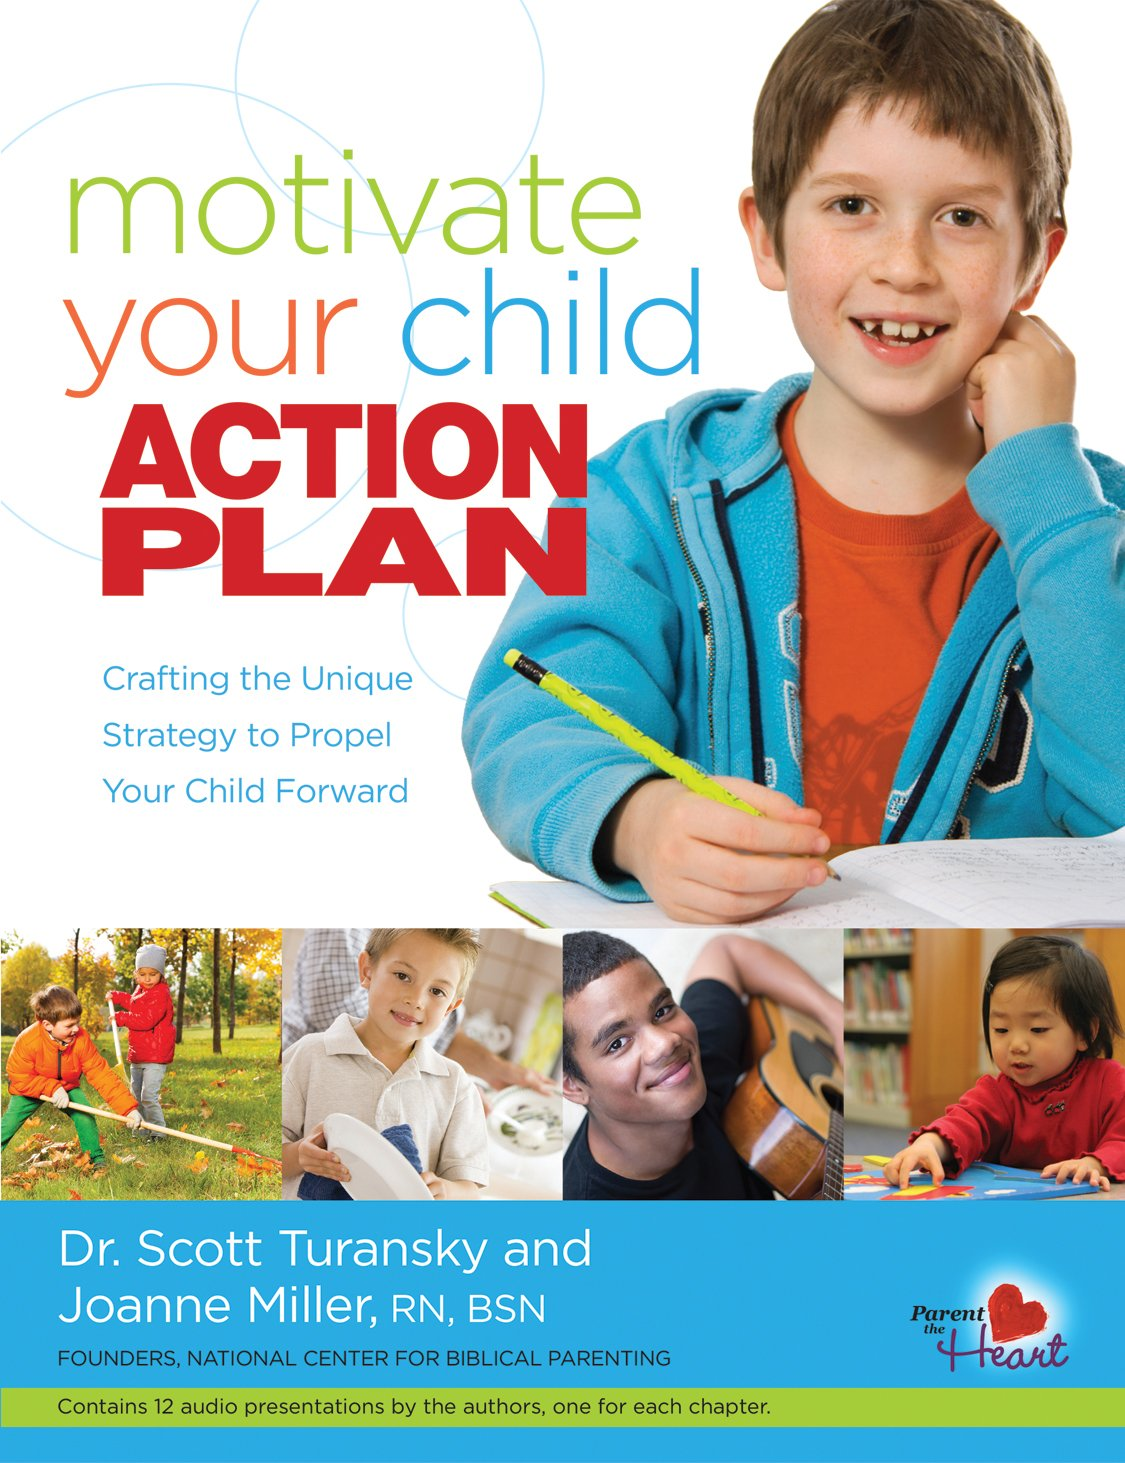 Motivate Your Child Action Plan by Dr. Scott Turansky and Joanne Miller, RN, BSN